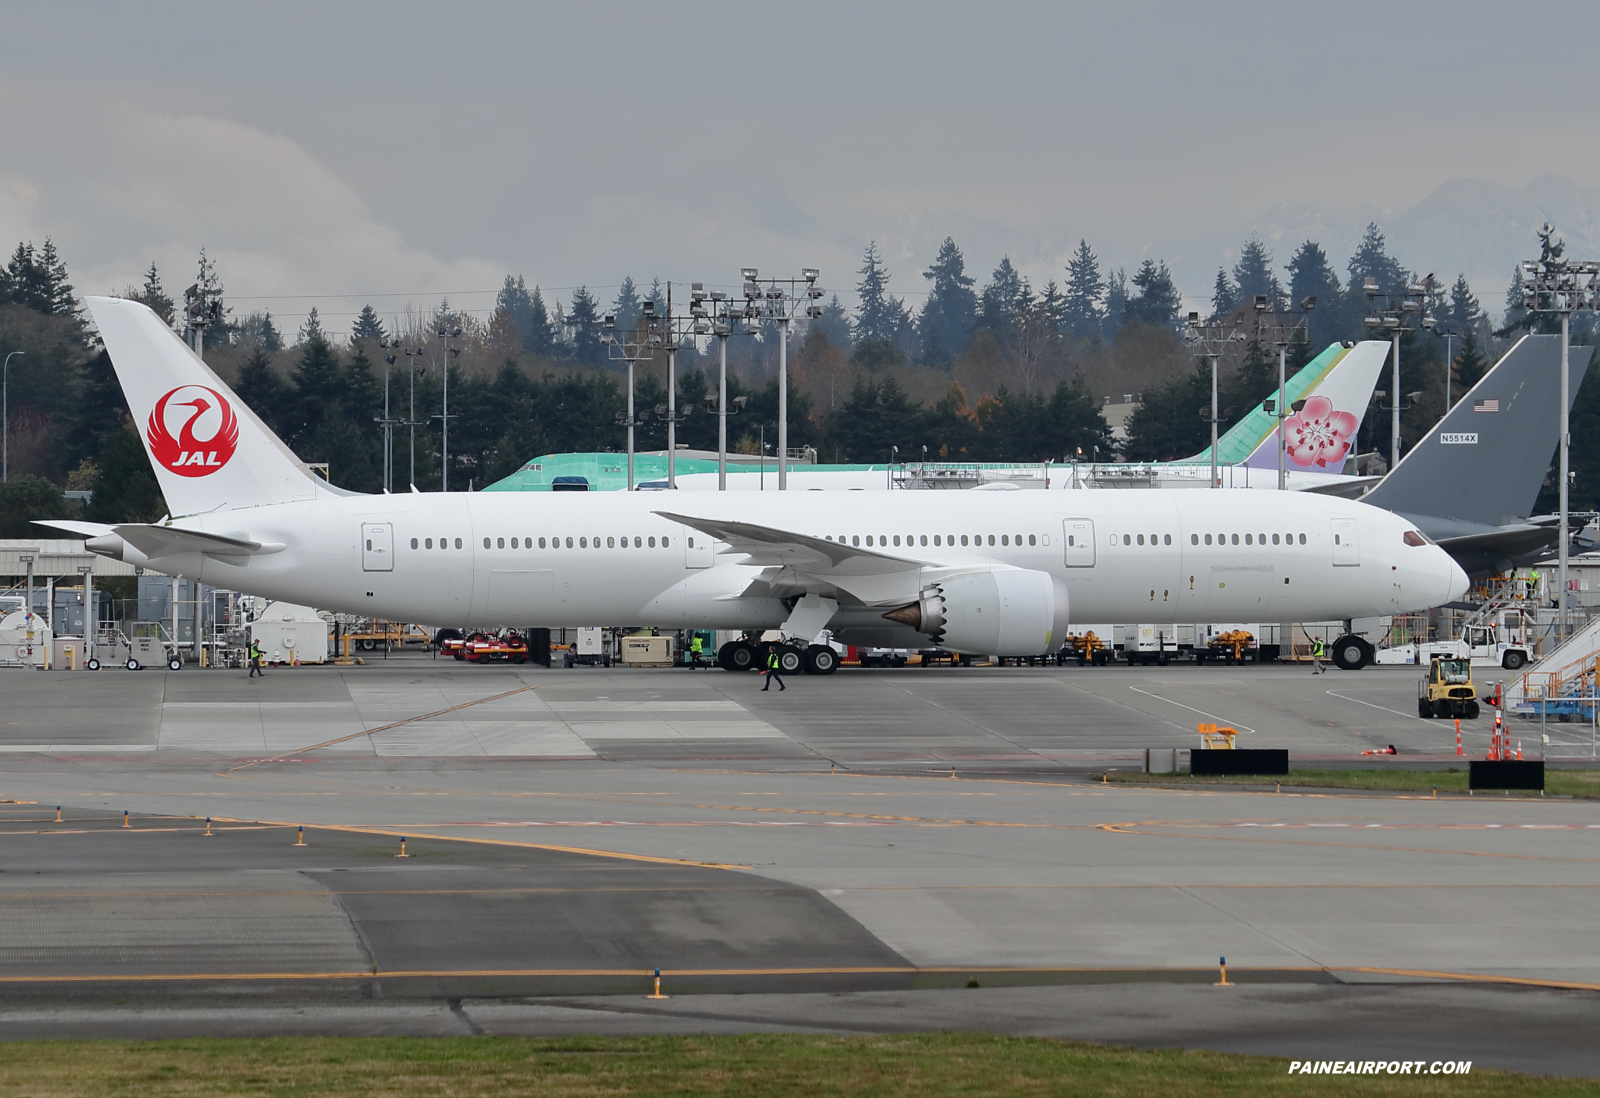 Japan Airlines 787-9 at KPAE Paine Field